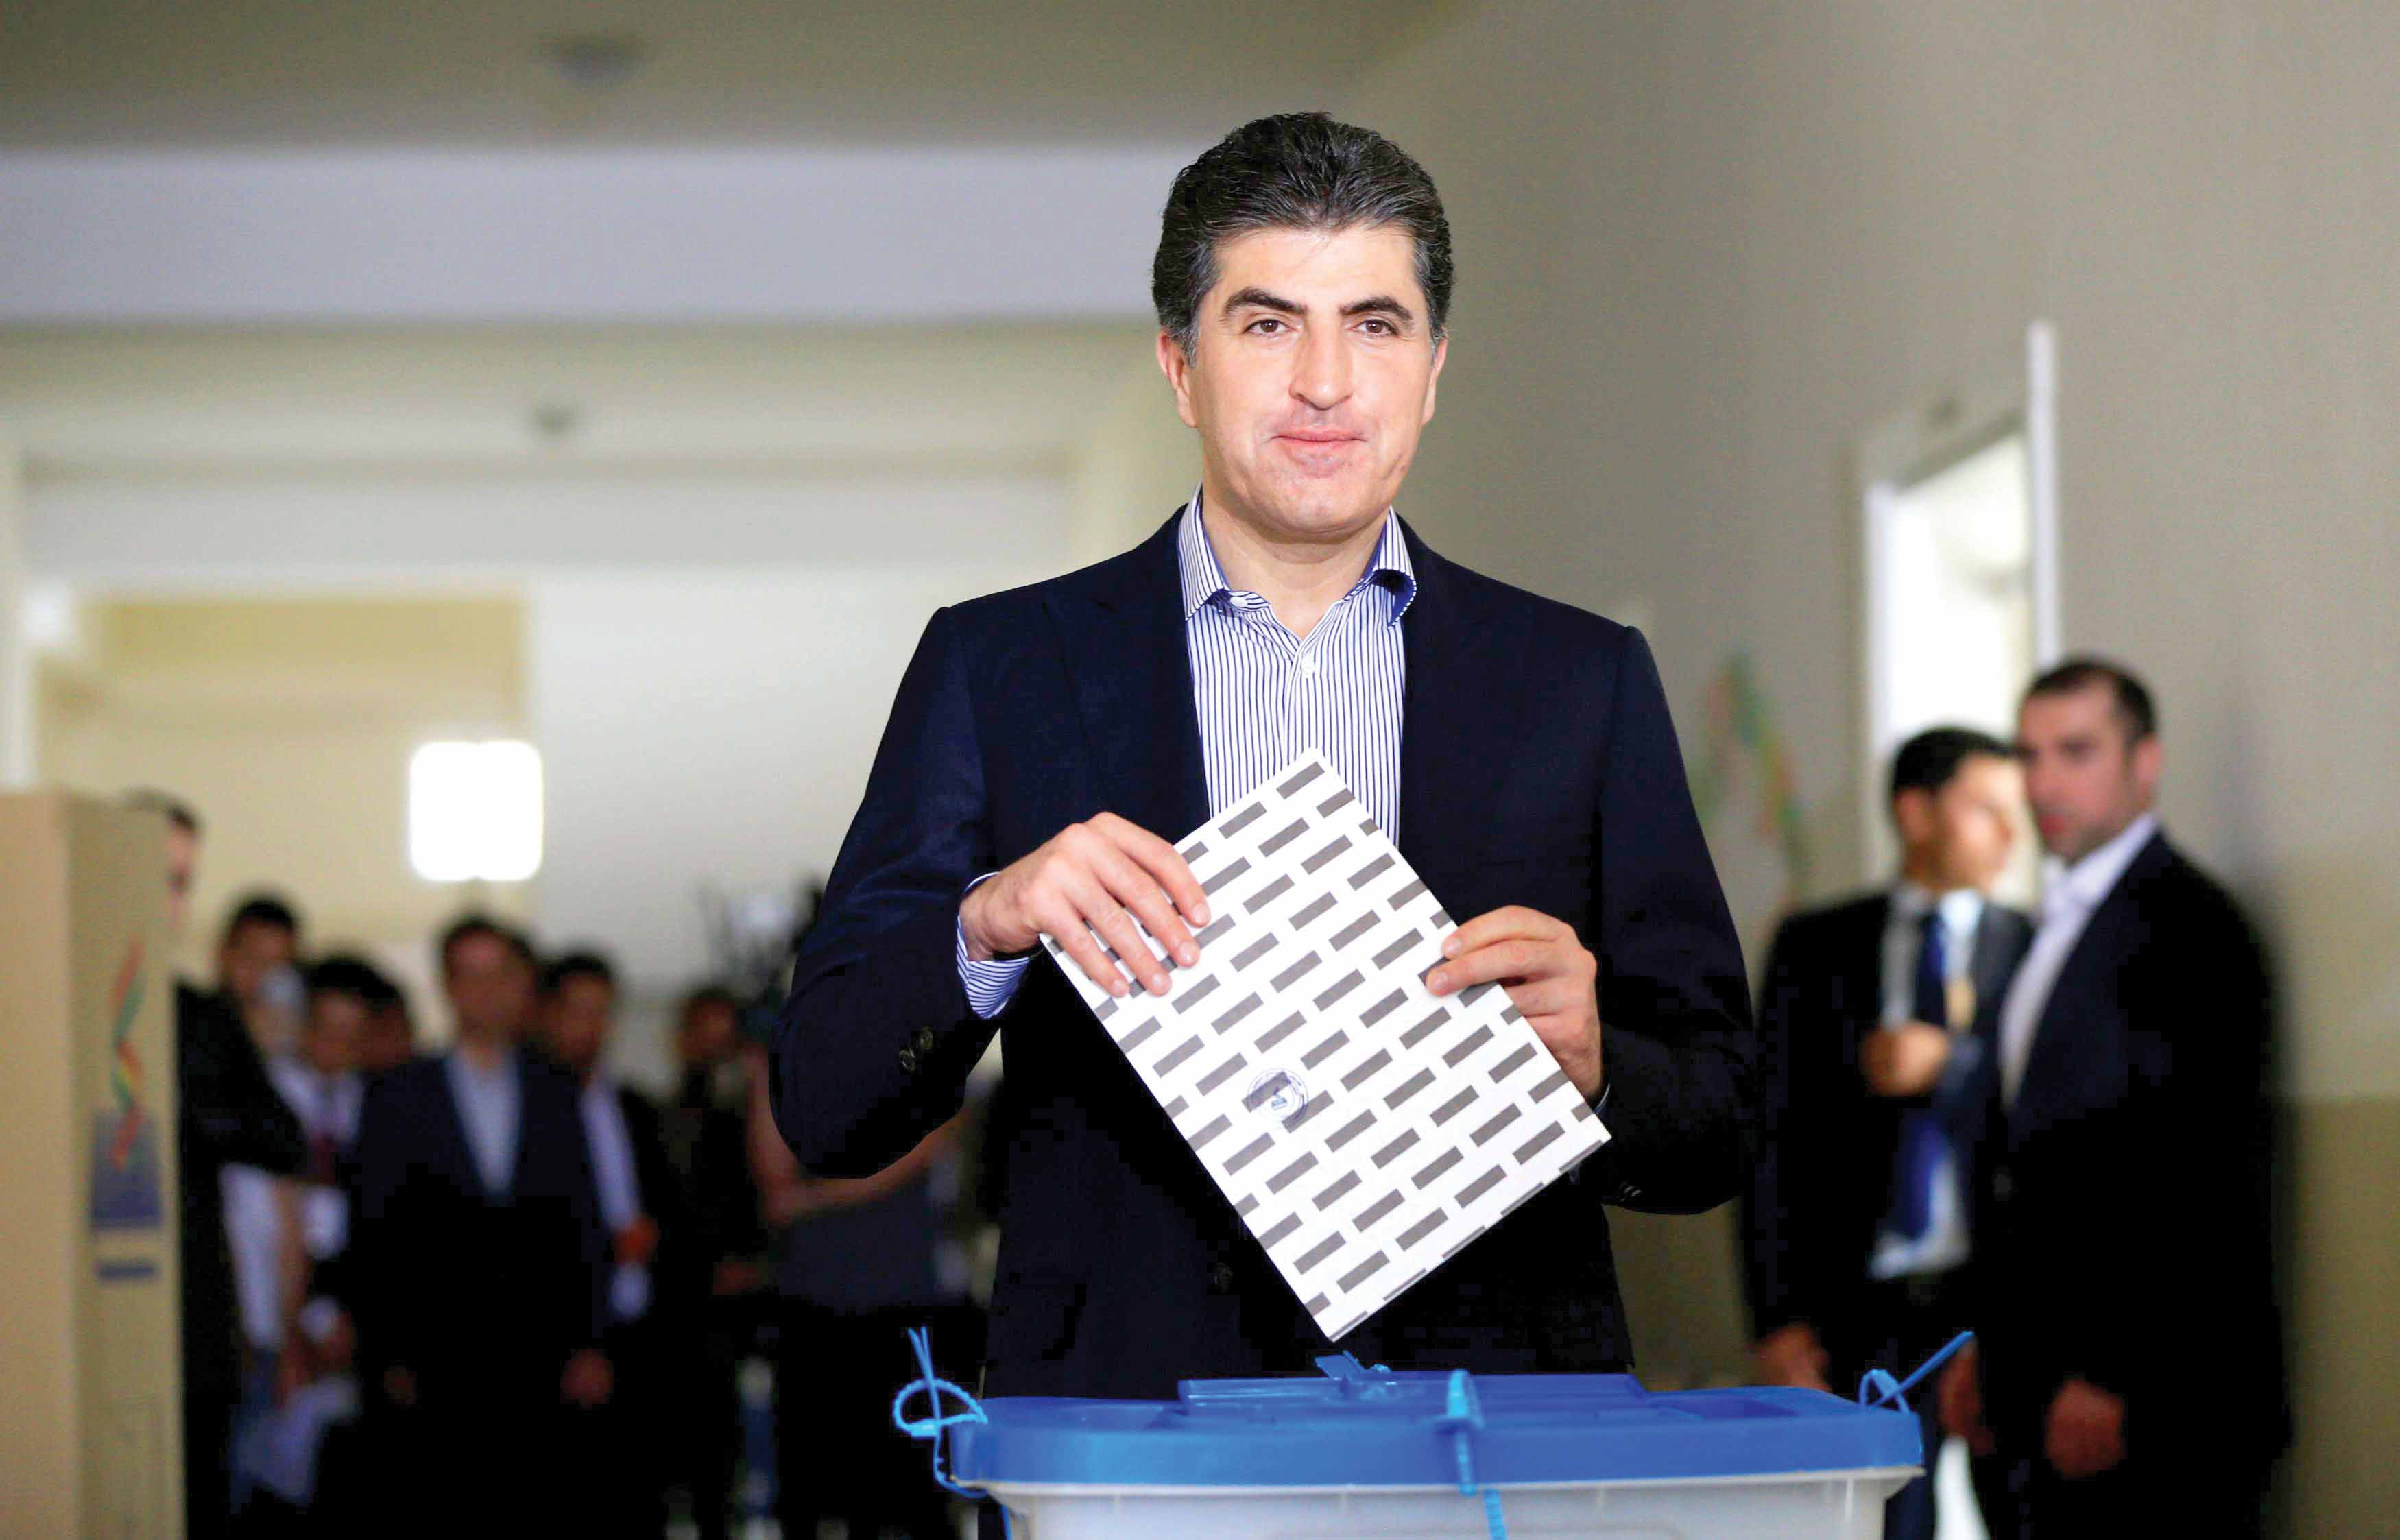 Nechirvan Barzani, deputy leader of the Kurdistan Democratic Party, casts his vote at a polling station in Erbil, last September. (Reuters)